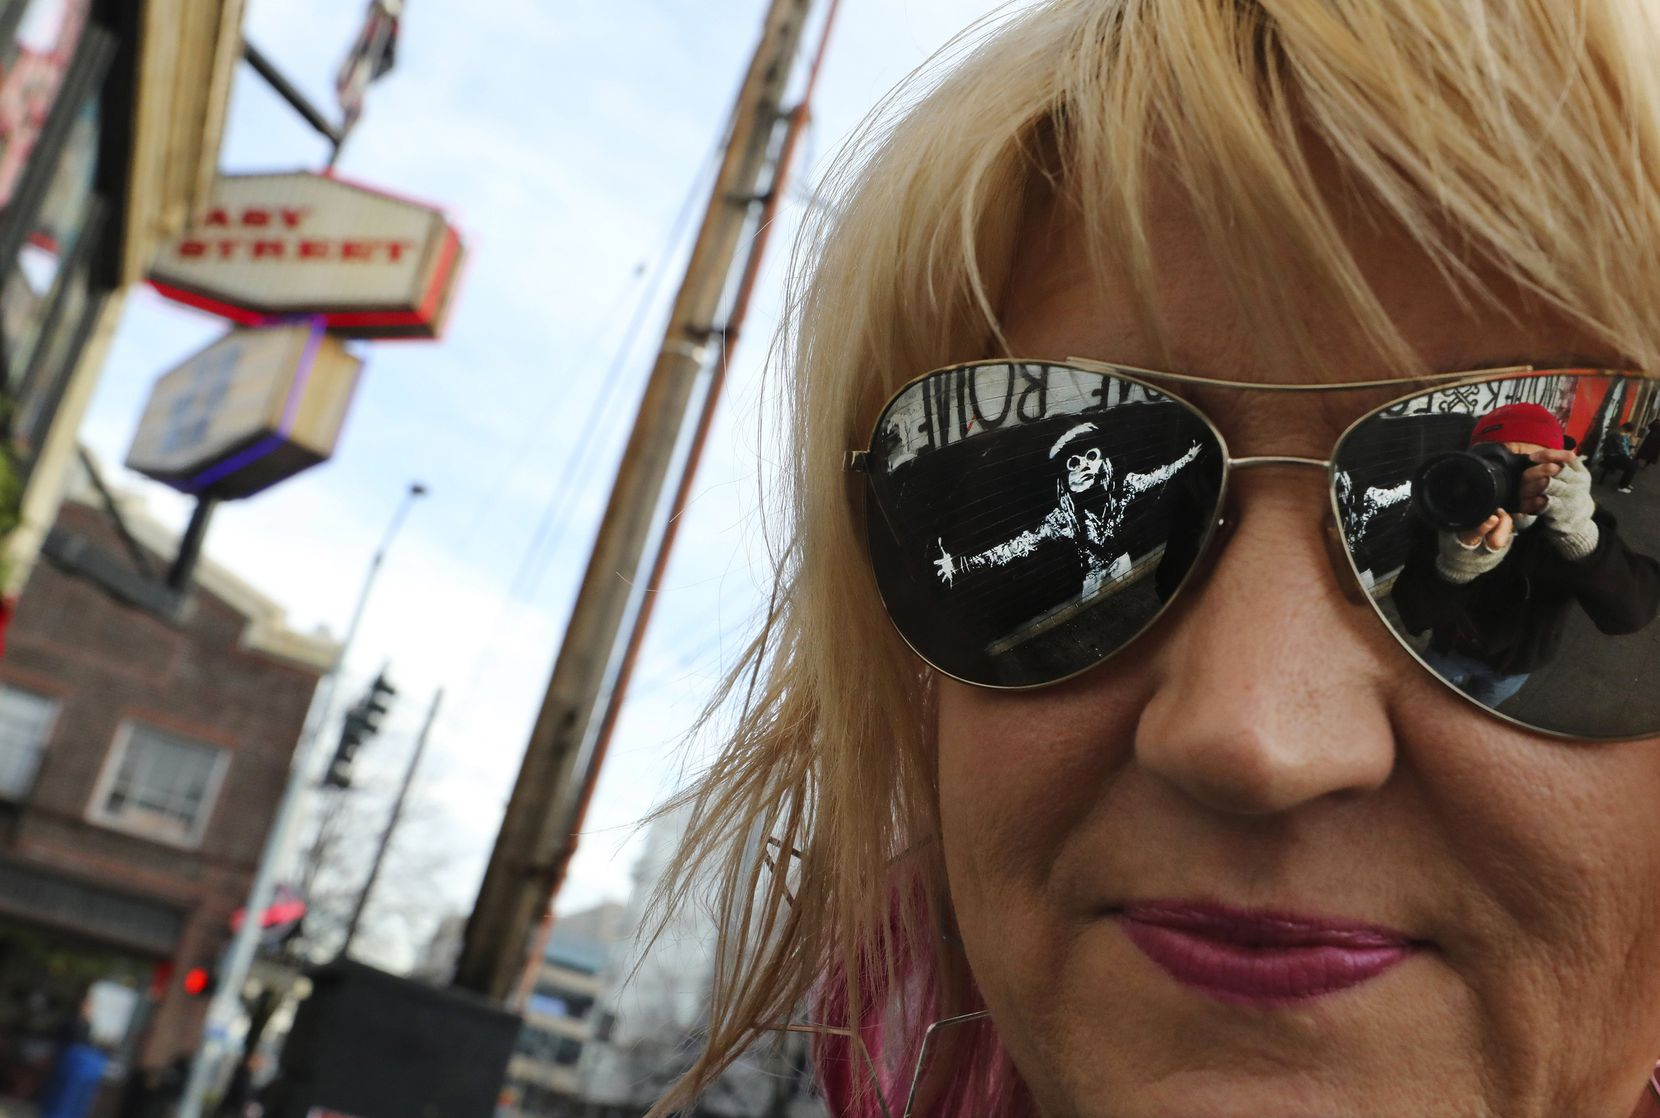 Photographer and author Karen Mason Blair's sunglasses reflect the late Andrew Wood of rock band Mother Love Bone. Wood is featured in one of the murals outside Easy Street Records in Seattle.